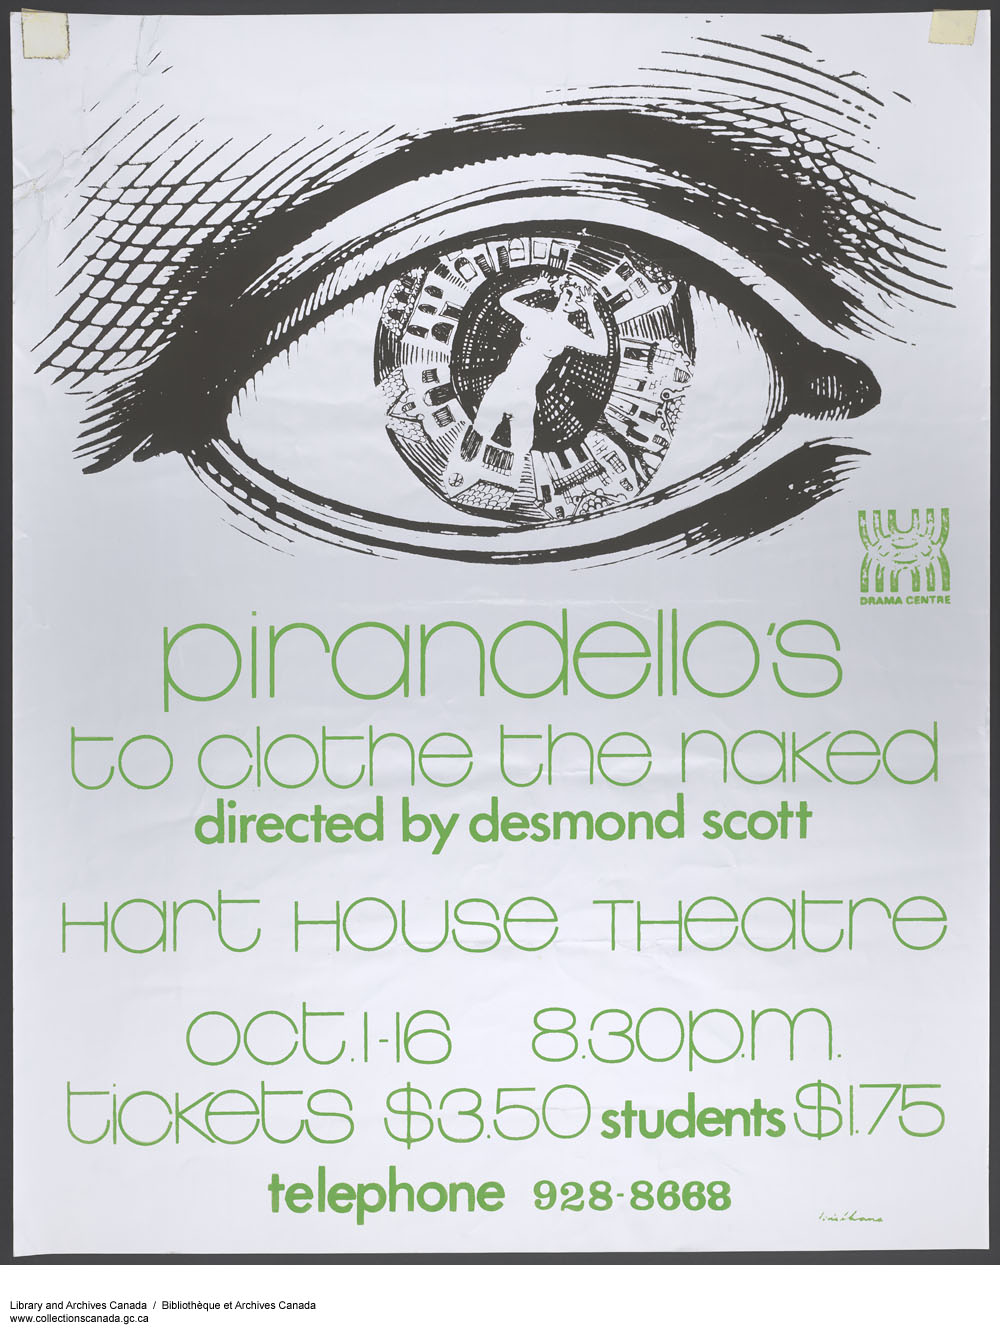 Hart House Theater presents: Piranaello's - to Clothe the Naked. (item 1)